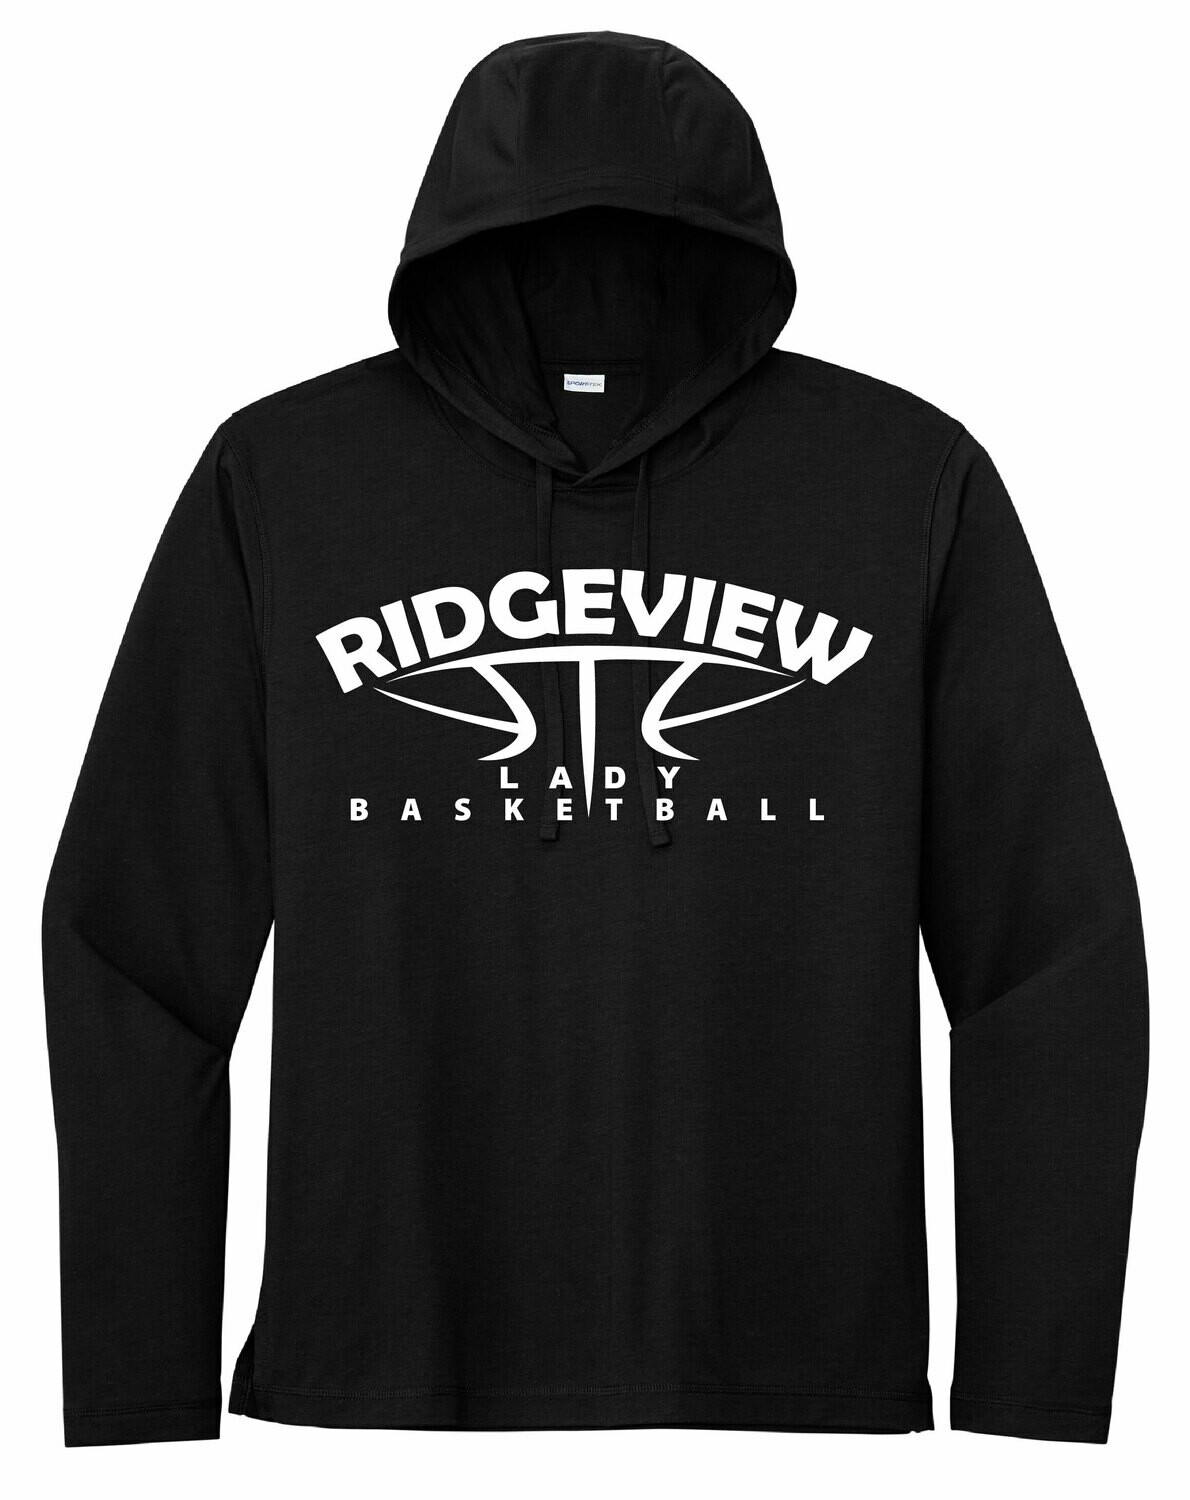 Sport-Tek PosiCharge Tri-Blend Wicking Long Sleeve Hoodie - Lady Basketball Logo